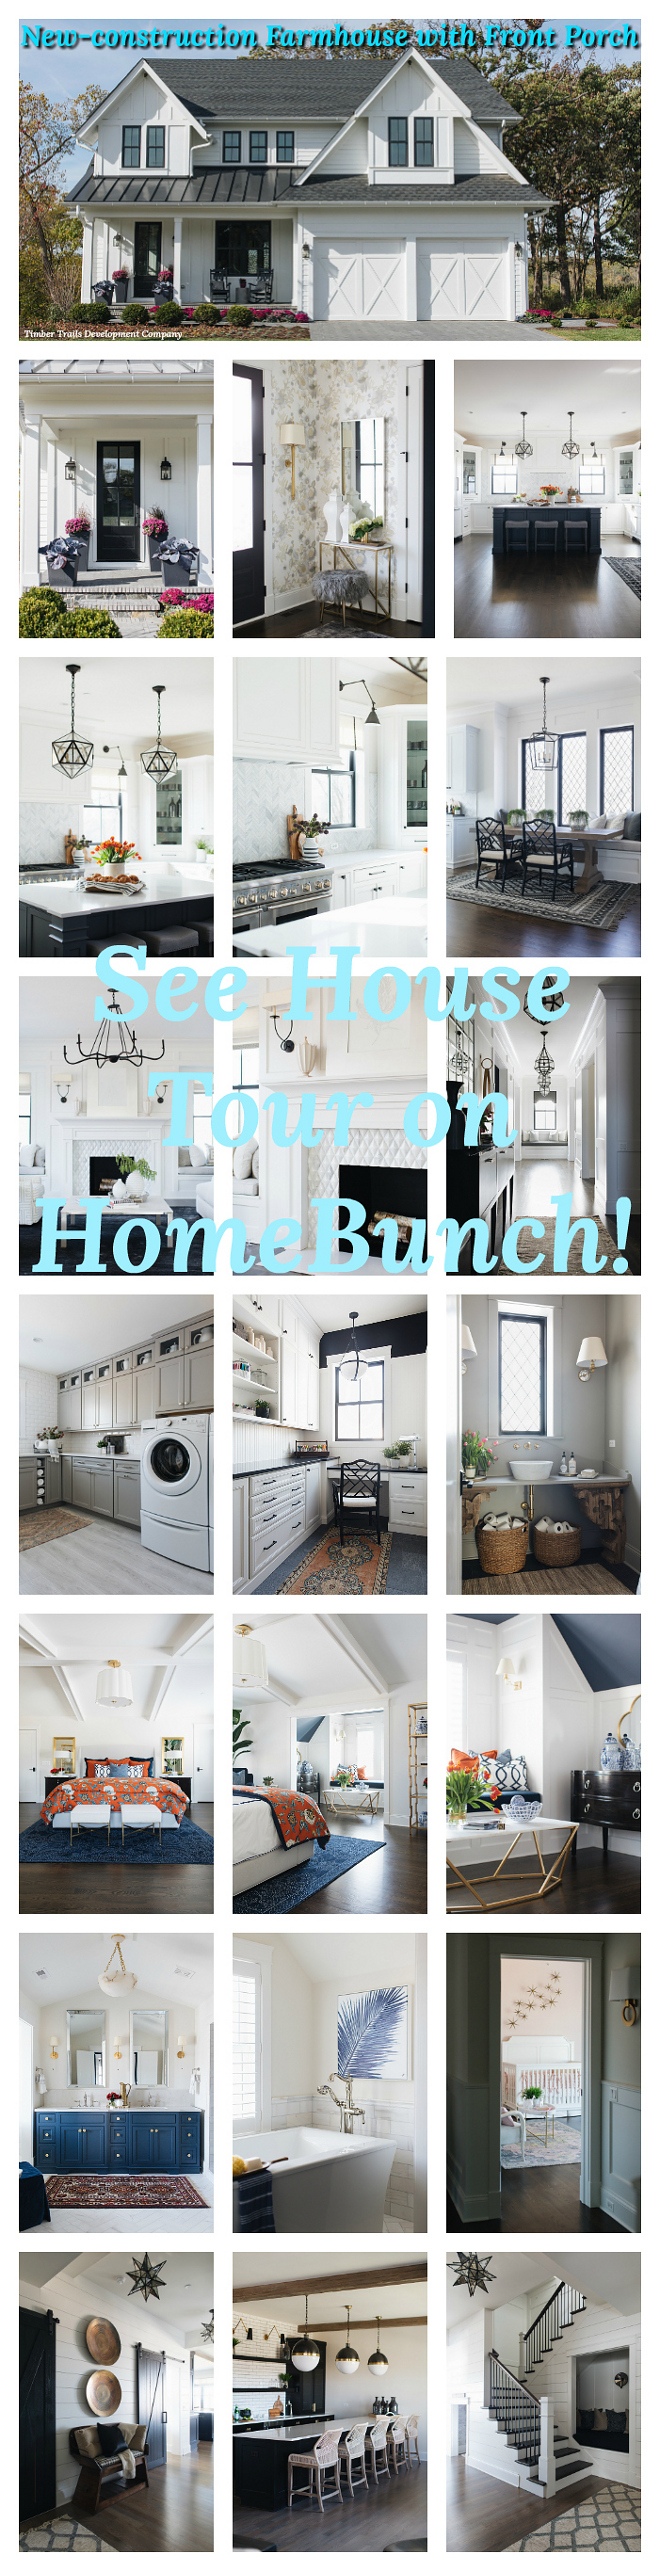 New-construction Farmhouse with Front Porch see house tour on Home Bunch